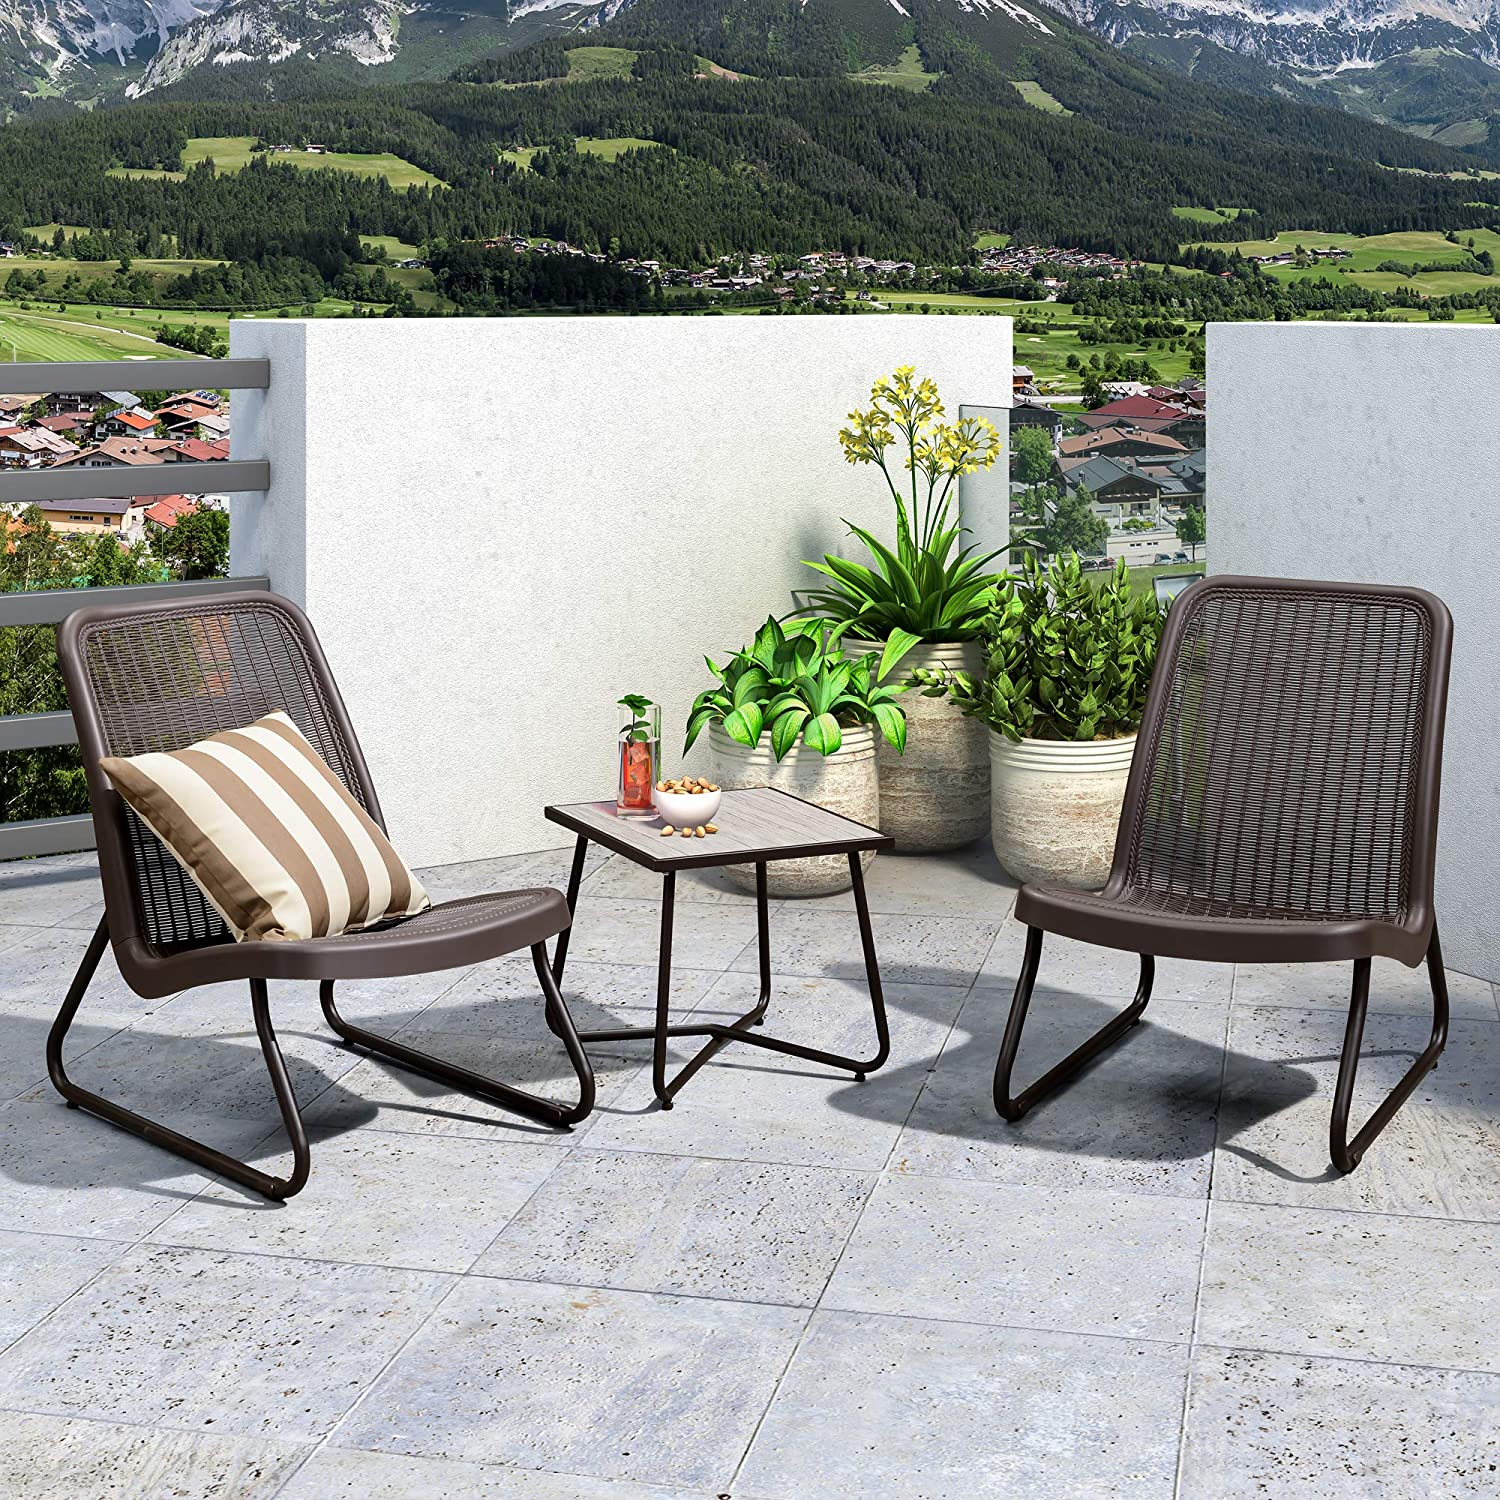 PURPLE LEAF 3 Pieces Patio Bistro Set with Weather Resistant Steel Frame and Square Table Conversation Set, Cushions Included, Coffee: Garden & Outdoor